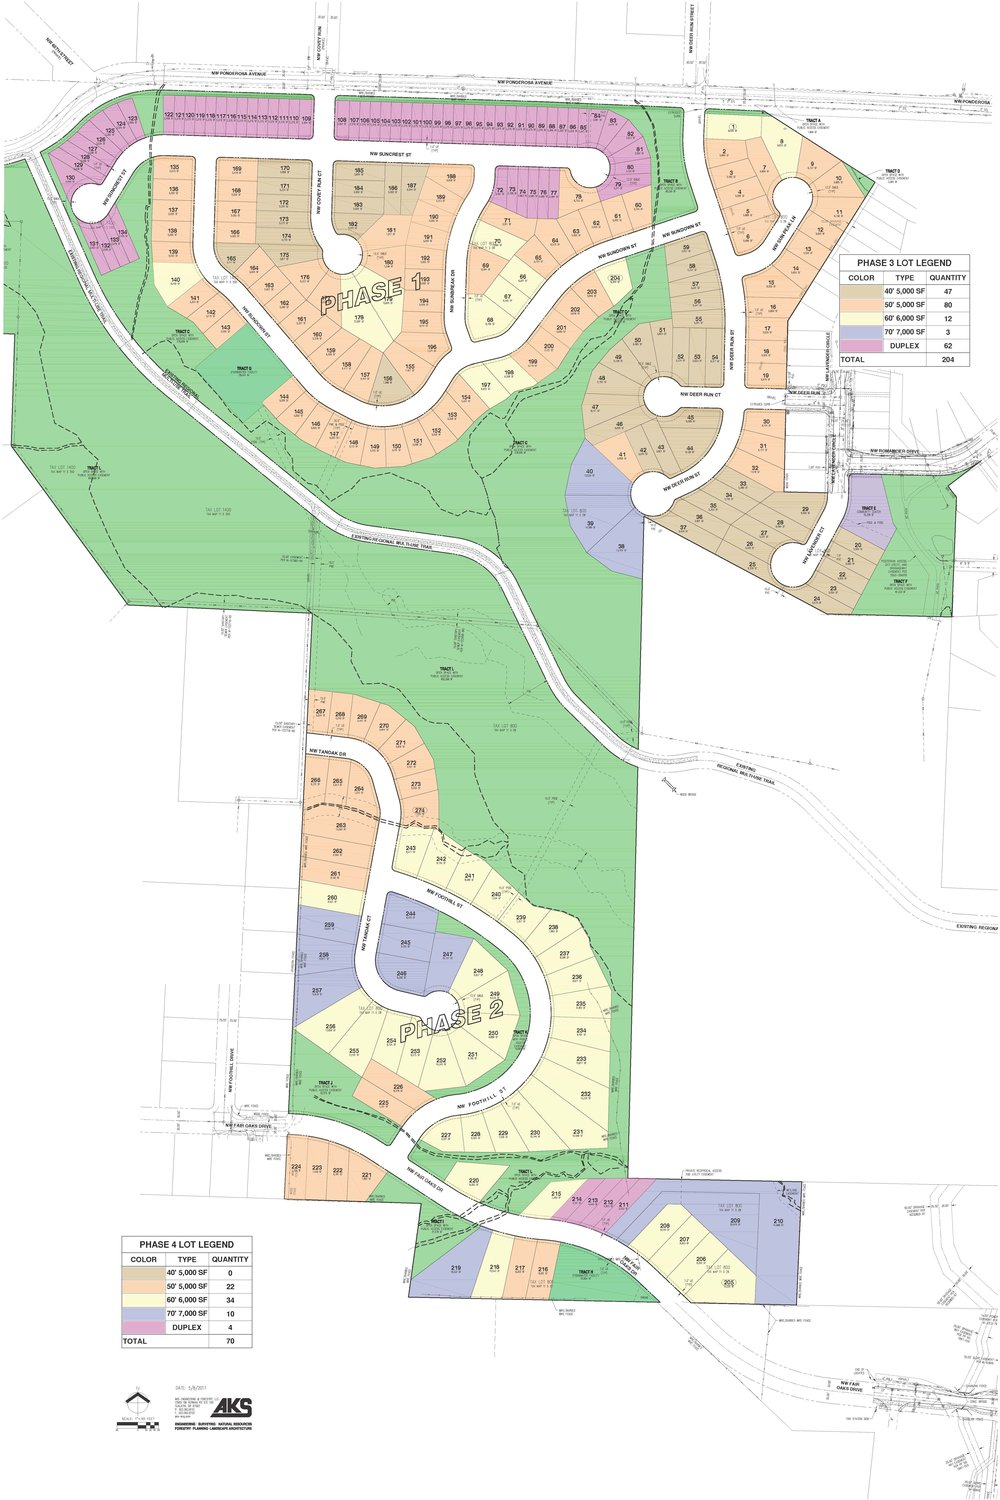 Ponderosa_masterplan_color_lot_sizes.jpg